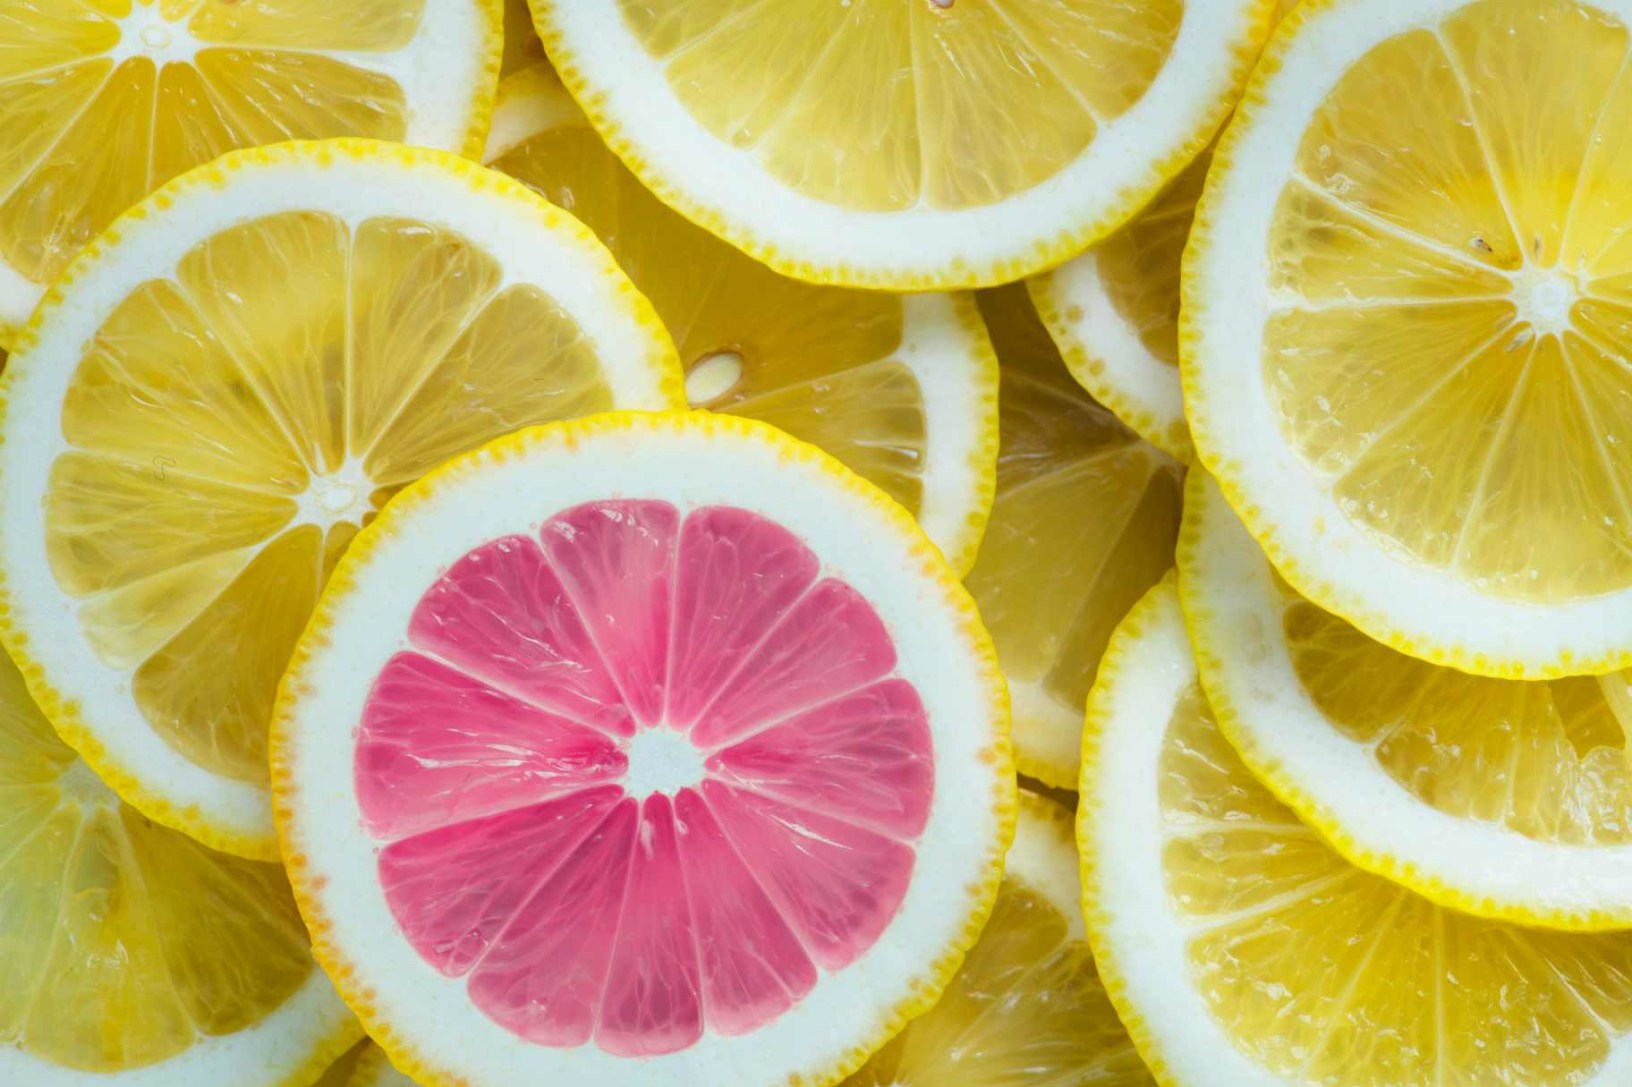 An image of lemons with one unique pink one